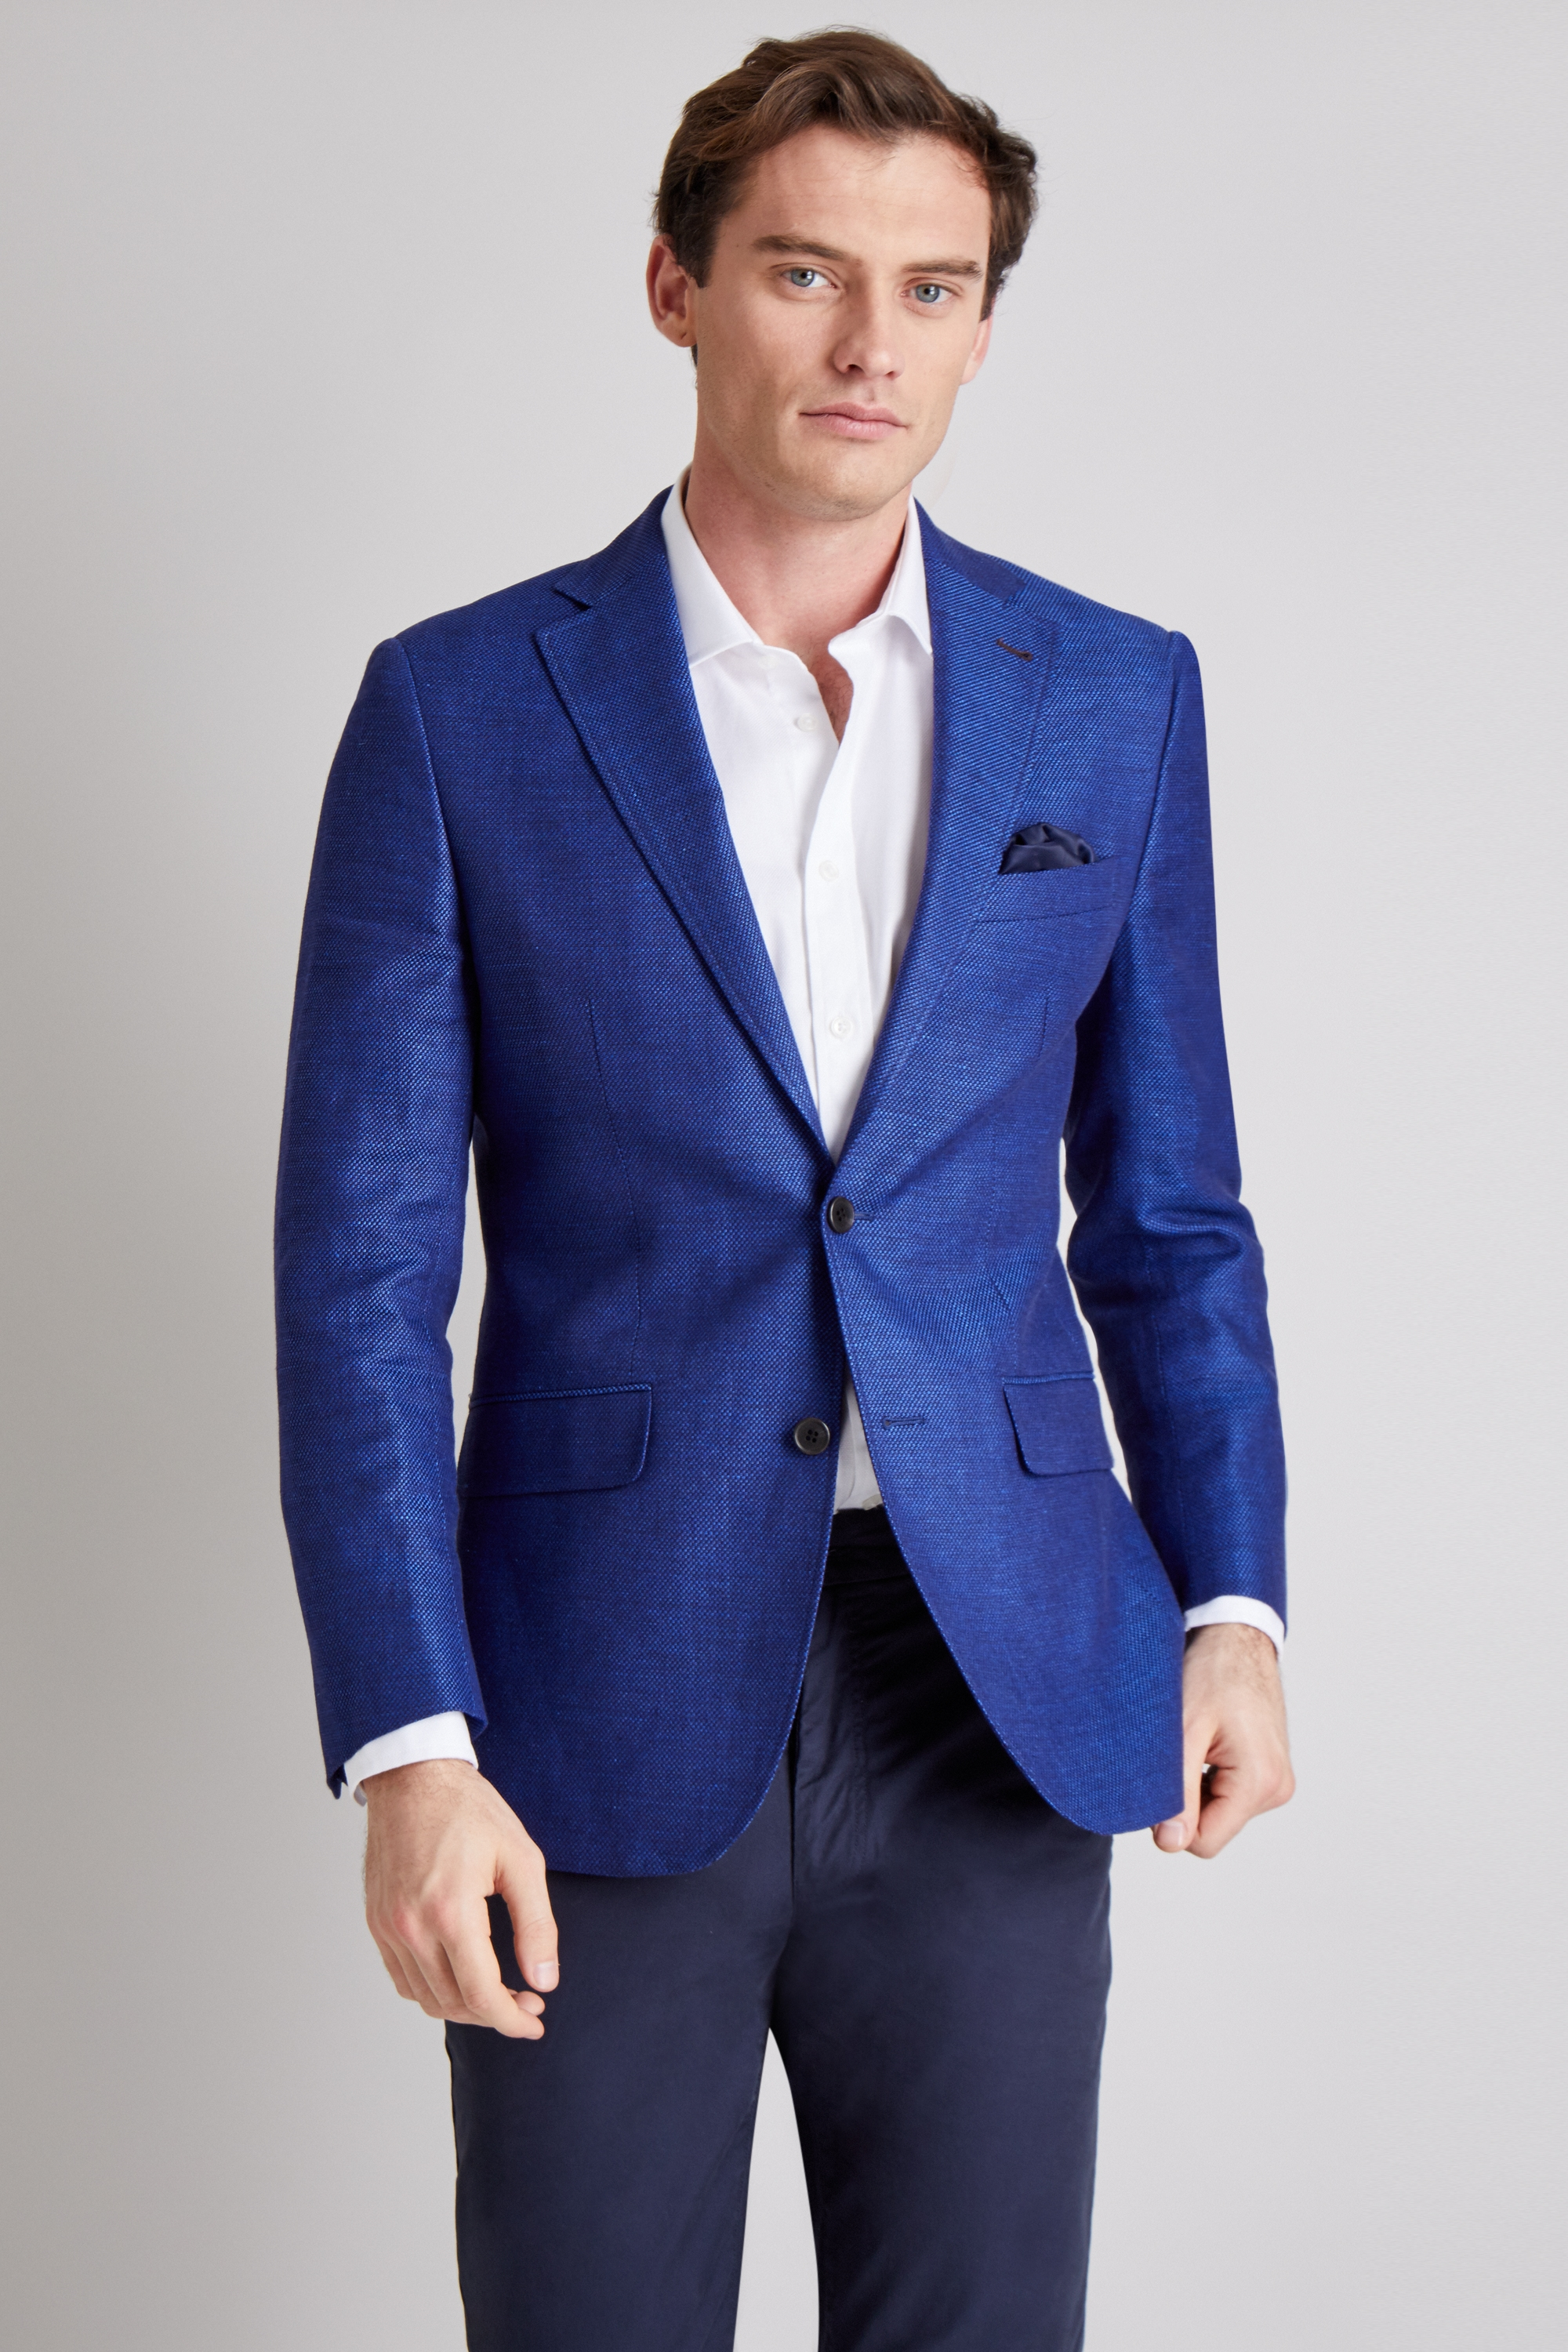 Find mens bright blue blazer at ShopStyle. Shop the latest collection of mens bright blue blazer from the most popular stores - all in one place.